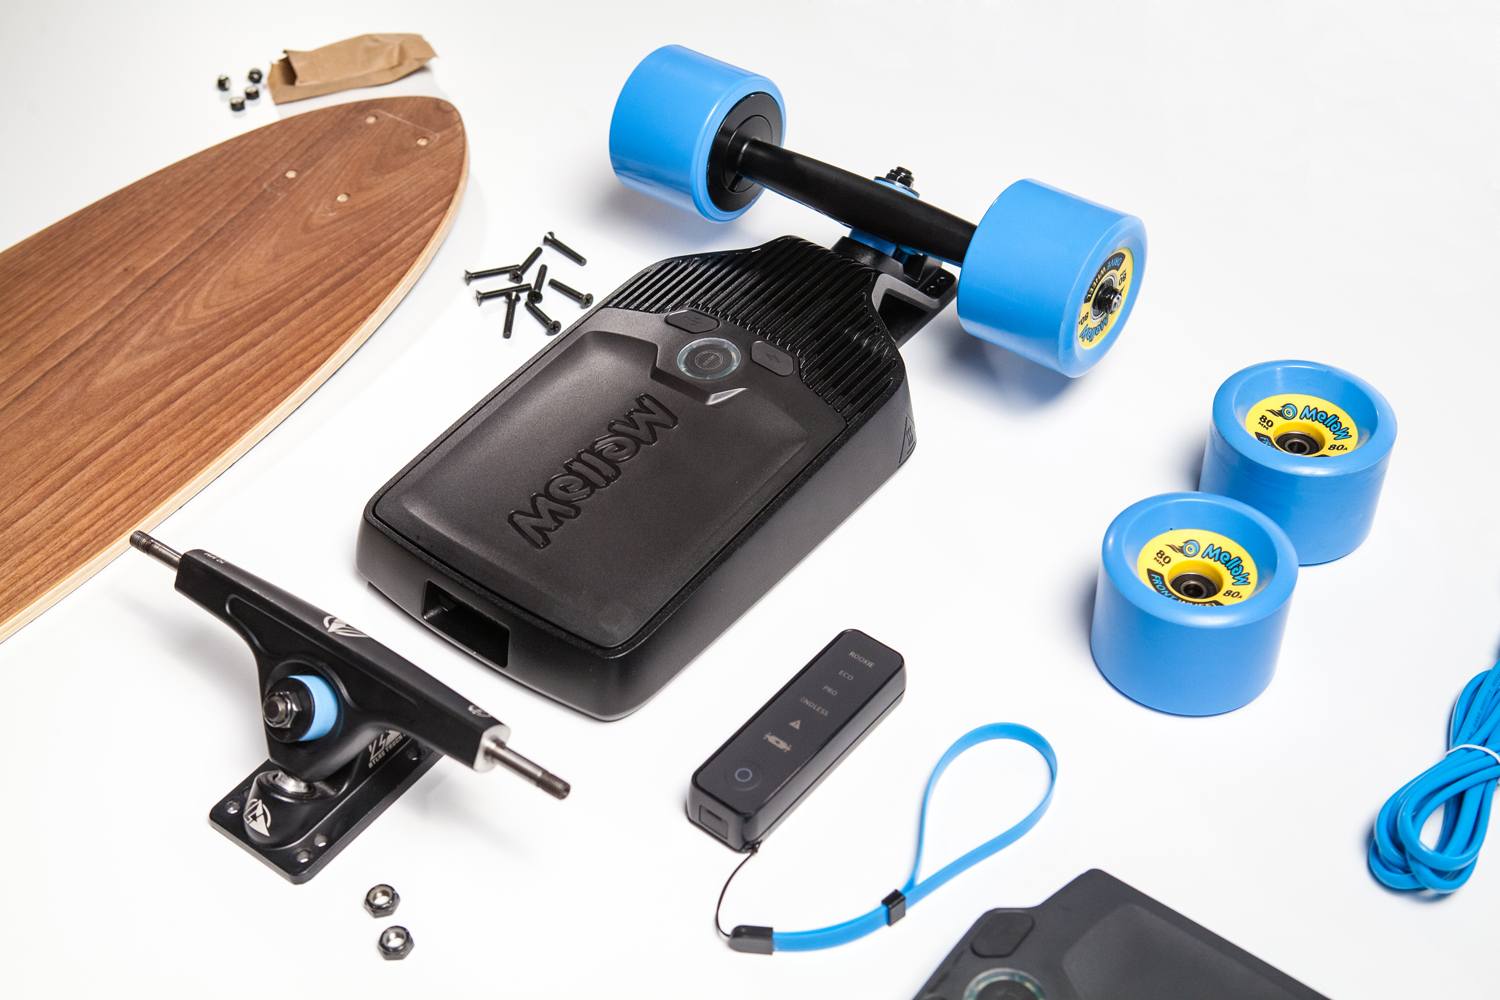 https://www.mellowboards.com/out/pictures/master/product/10/mellow_electric_skateboard_board.jpg